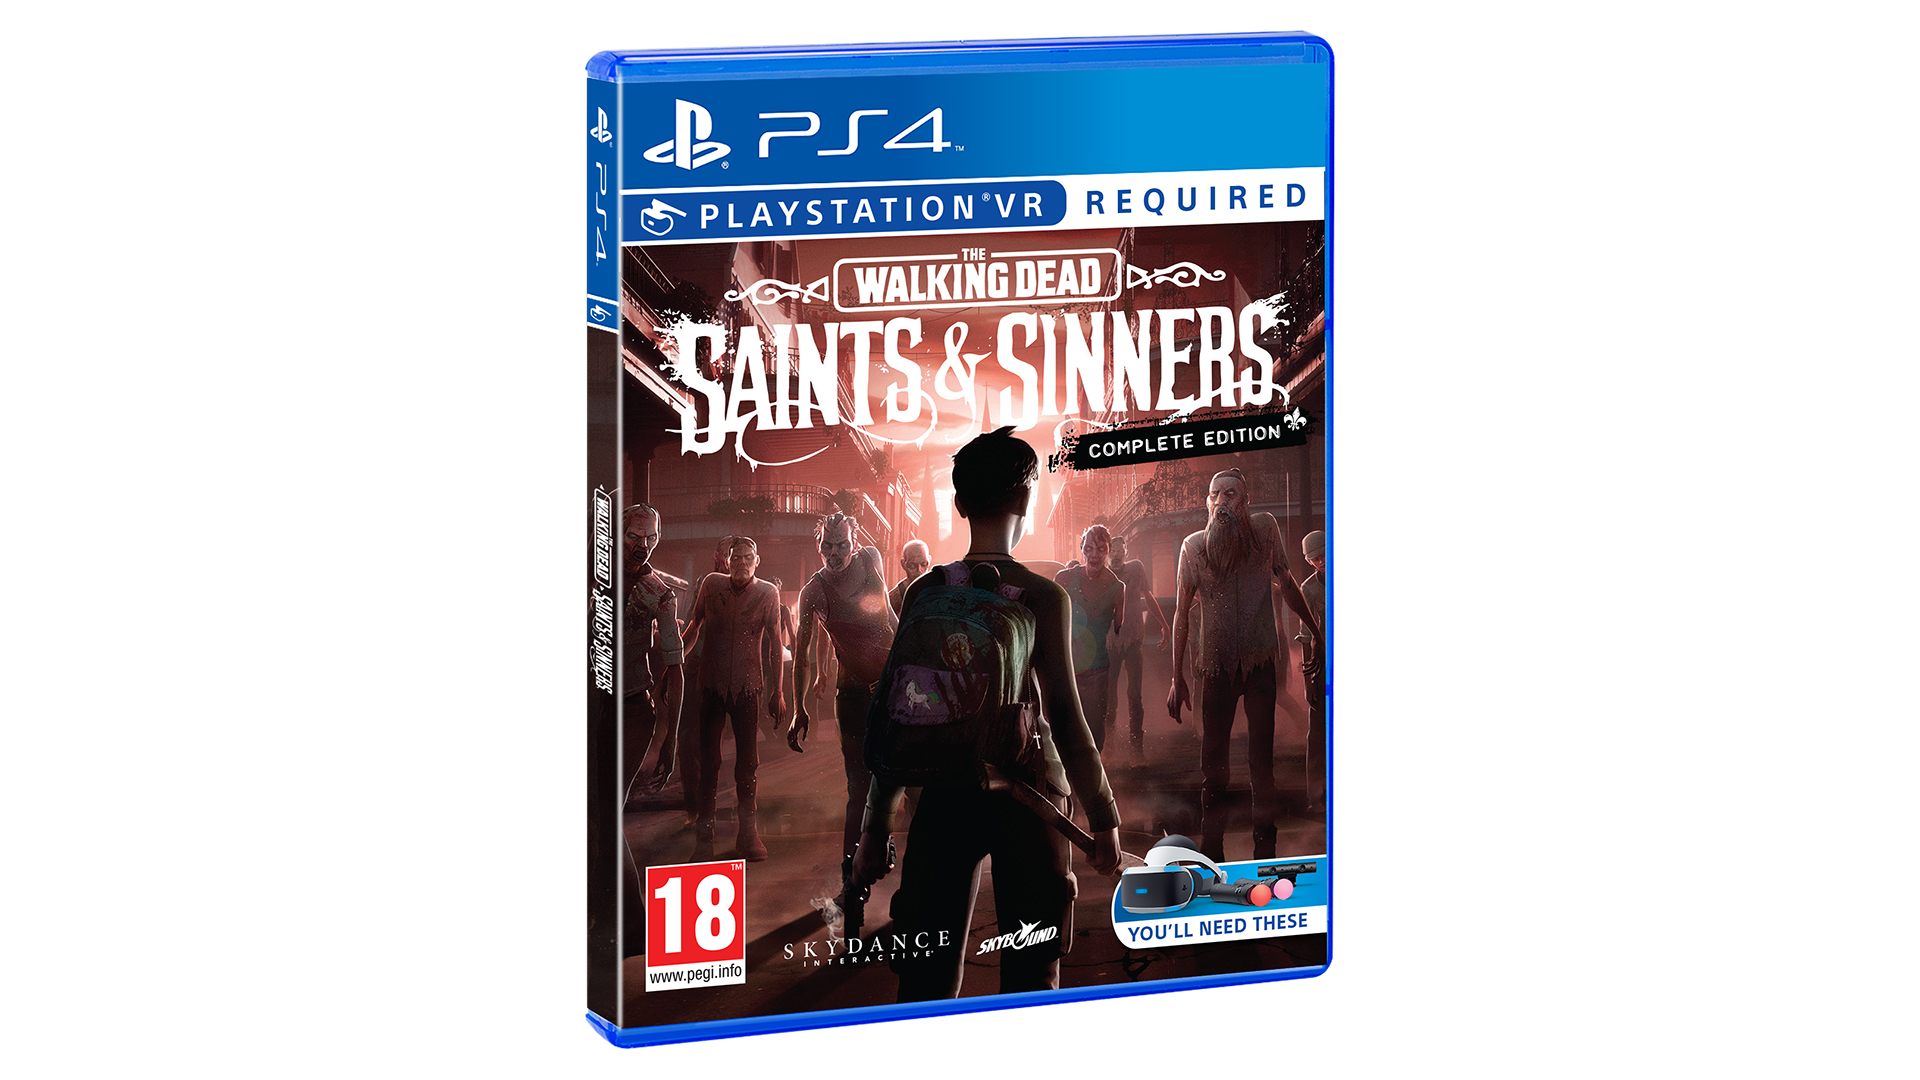 The Walking Dead: Saints & Sinners - Complete Edition